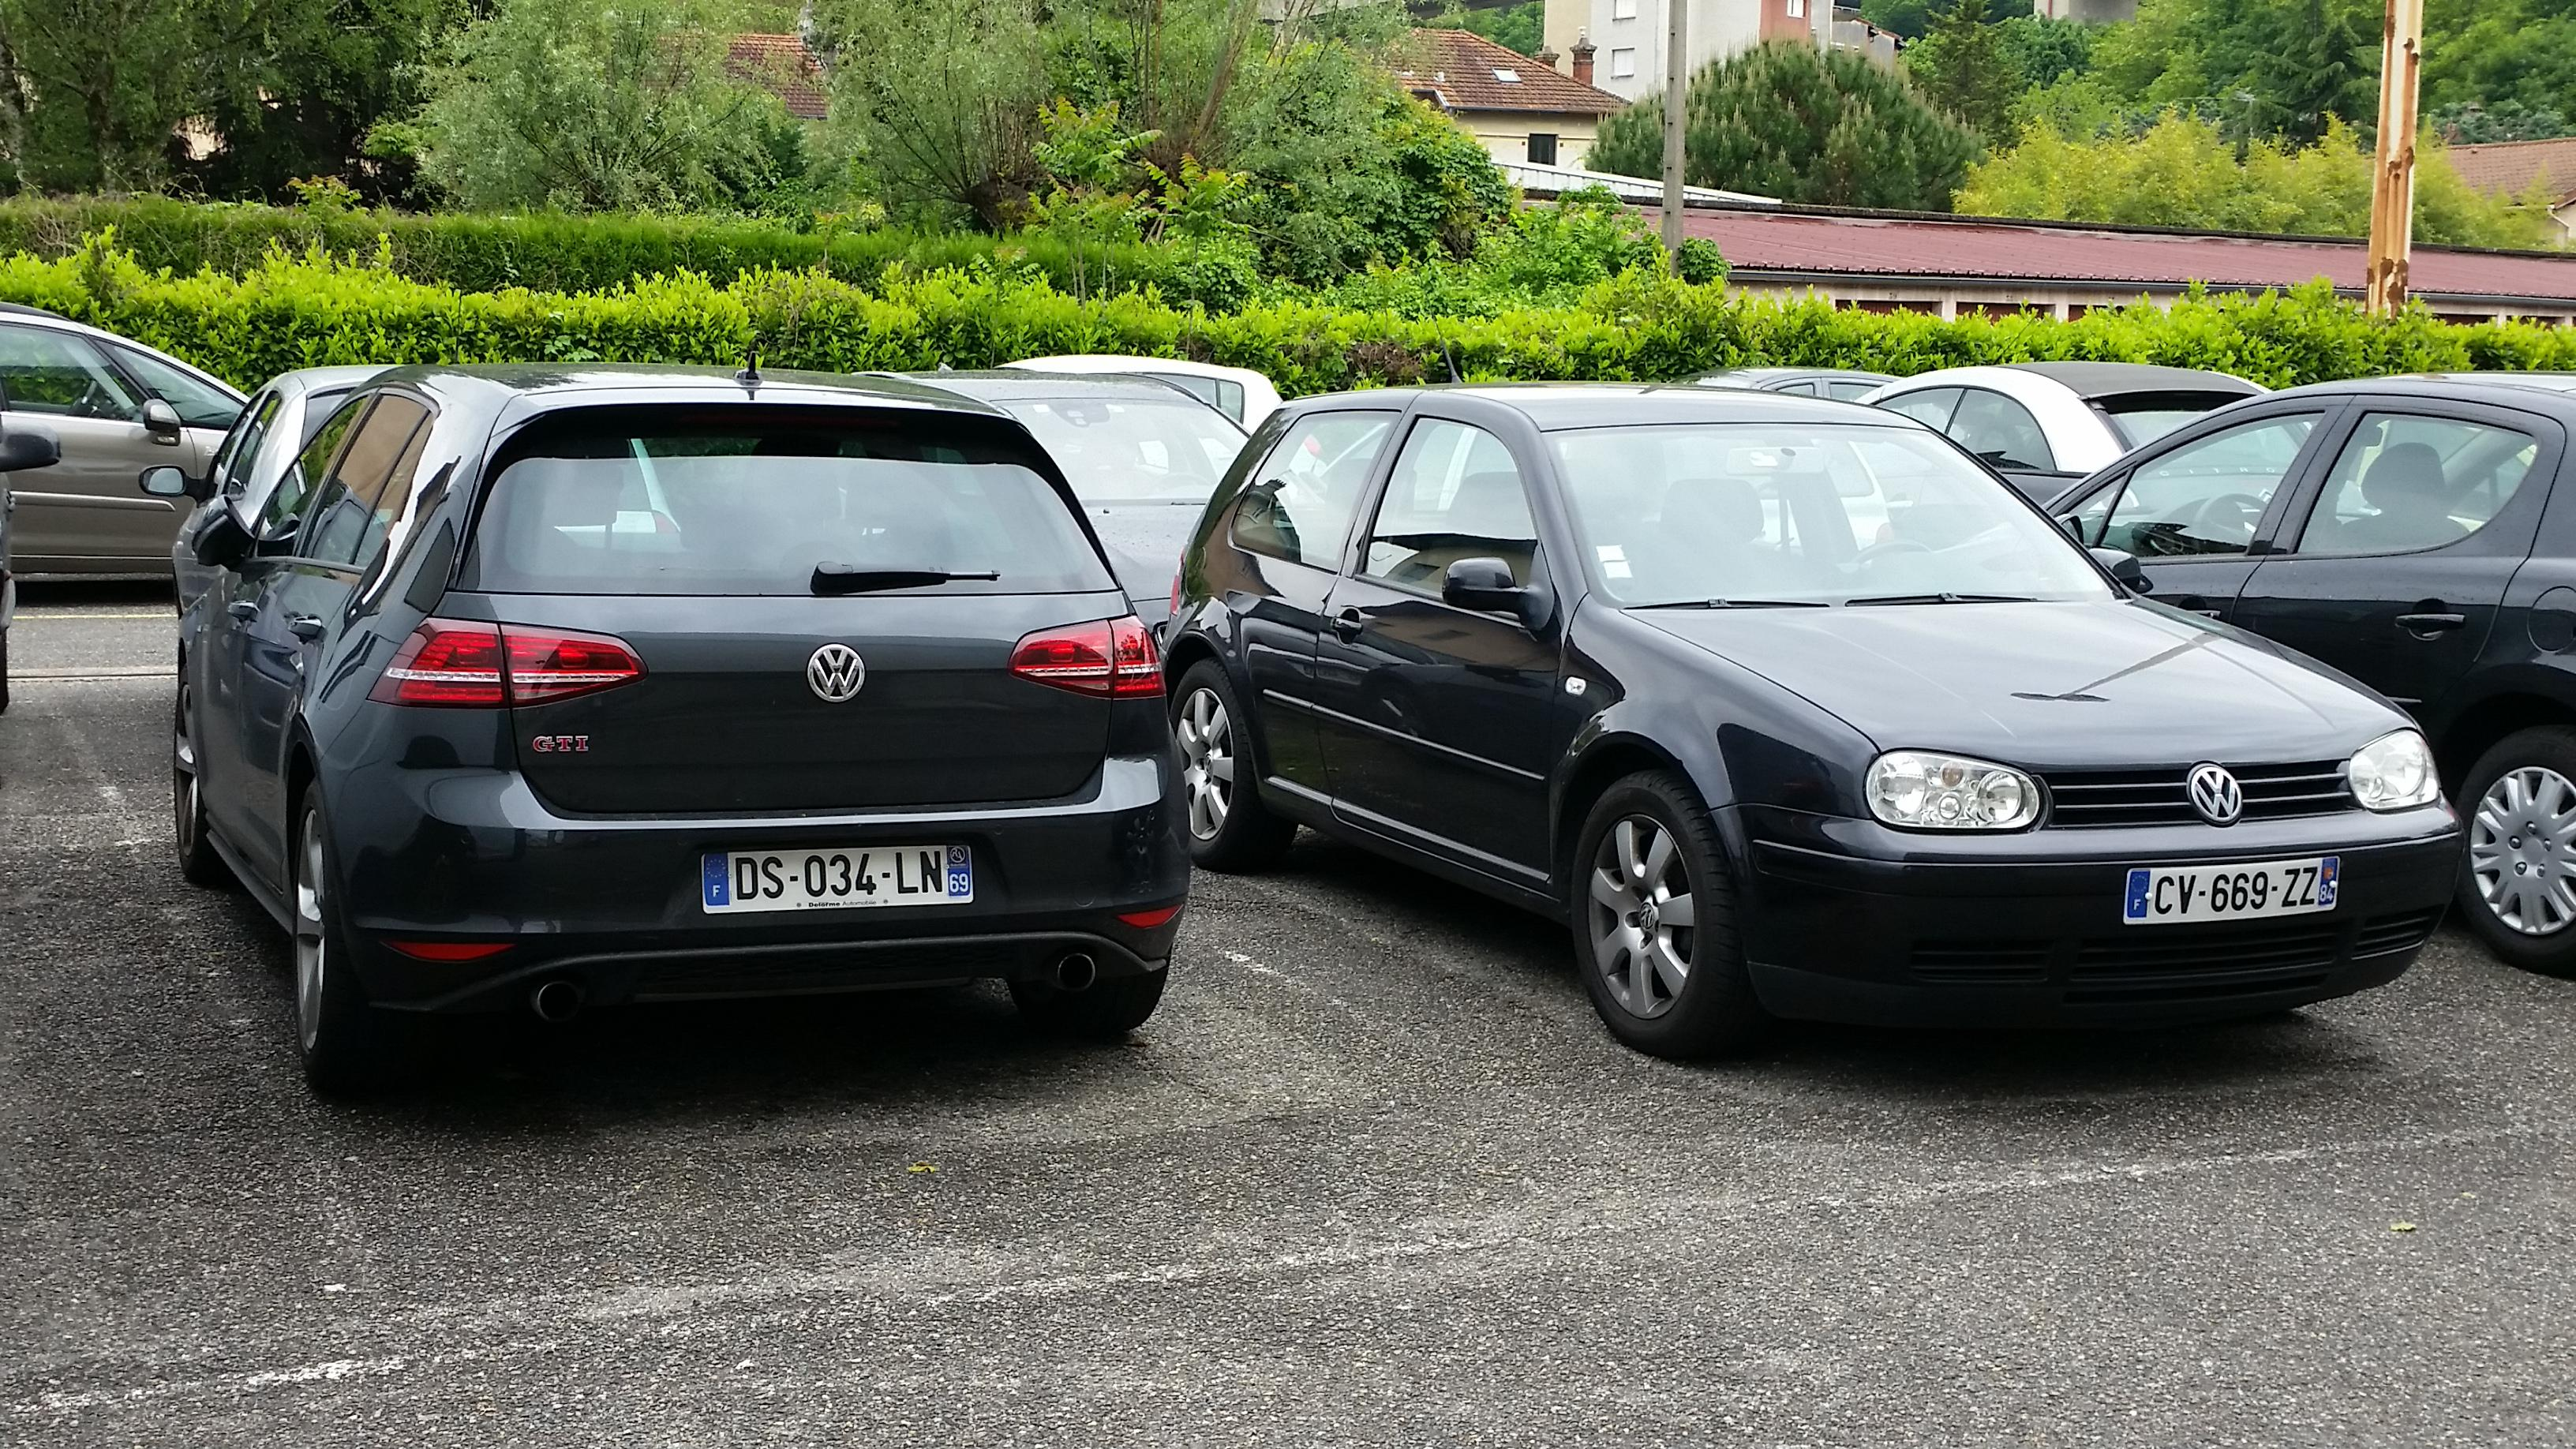 vw golf iv 1 6 16v match ii 2003 garage des golf iv 1 6 1 6 16v forum volkswagen golf iv. Black Bedroom Furniture Sets. Home Design Ideas